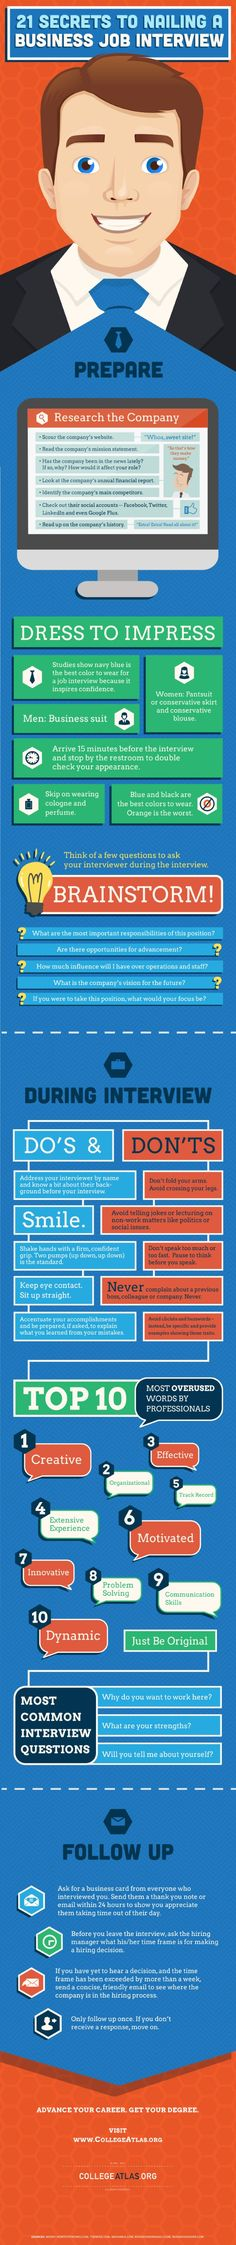 infographic Nailing a Job Interview by Brian Junyor via slideshare. Image Description Nailing a Job Interview by Brian Junyor via slideshare Interview Skills, Job Interview Questions, Job Interview Tips, Interview Preparation, Job Interviews, Interview Format, Job Hunting Tips, Leadership, Job Help